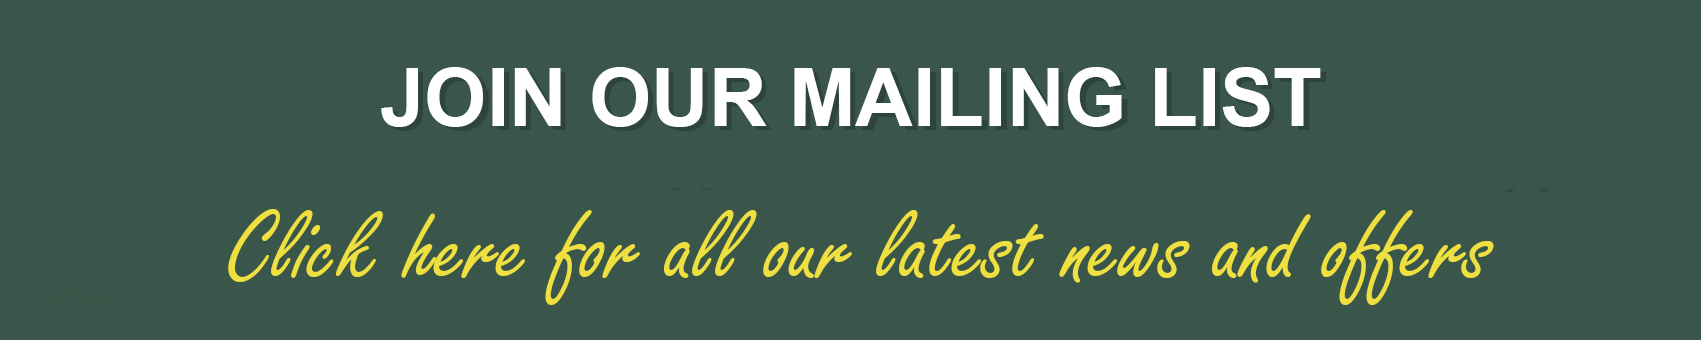 Join Our New Mailing List